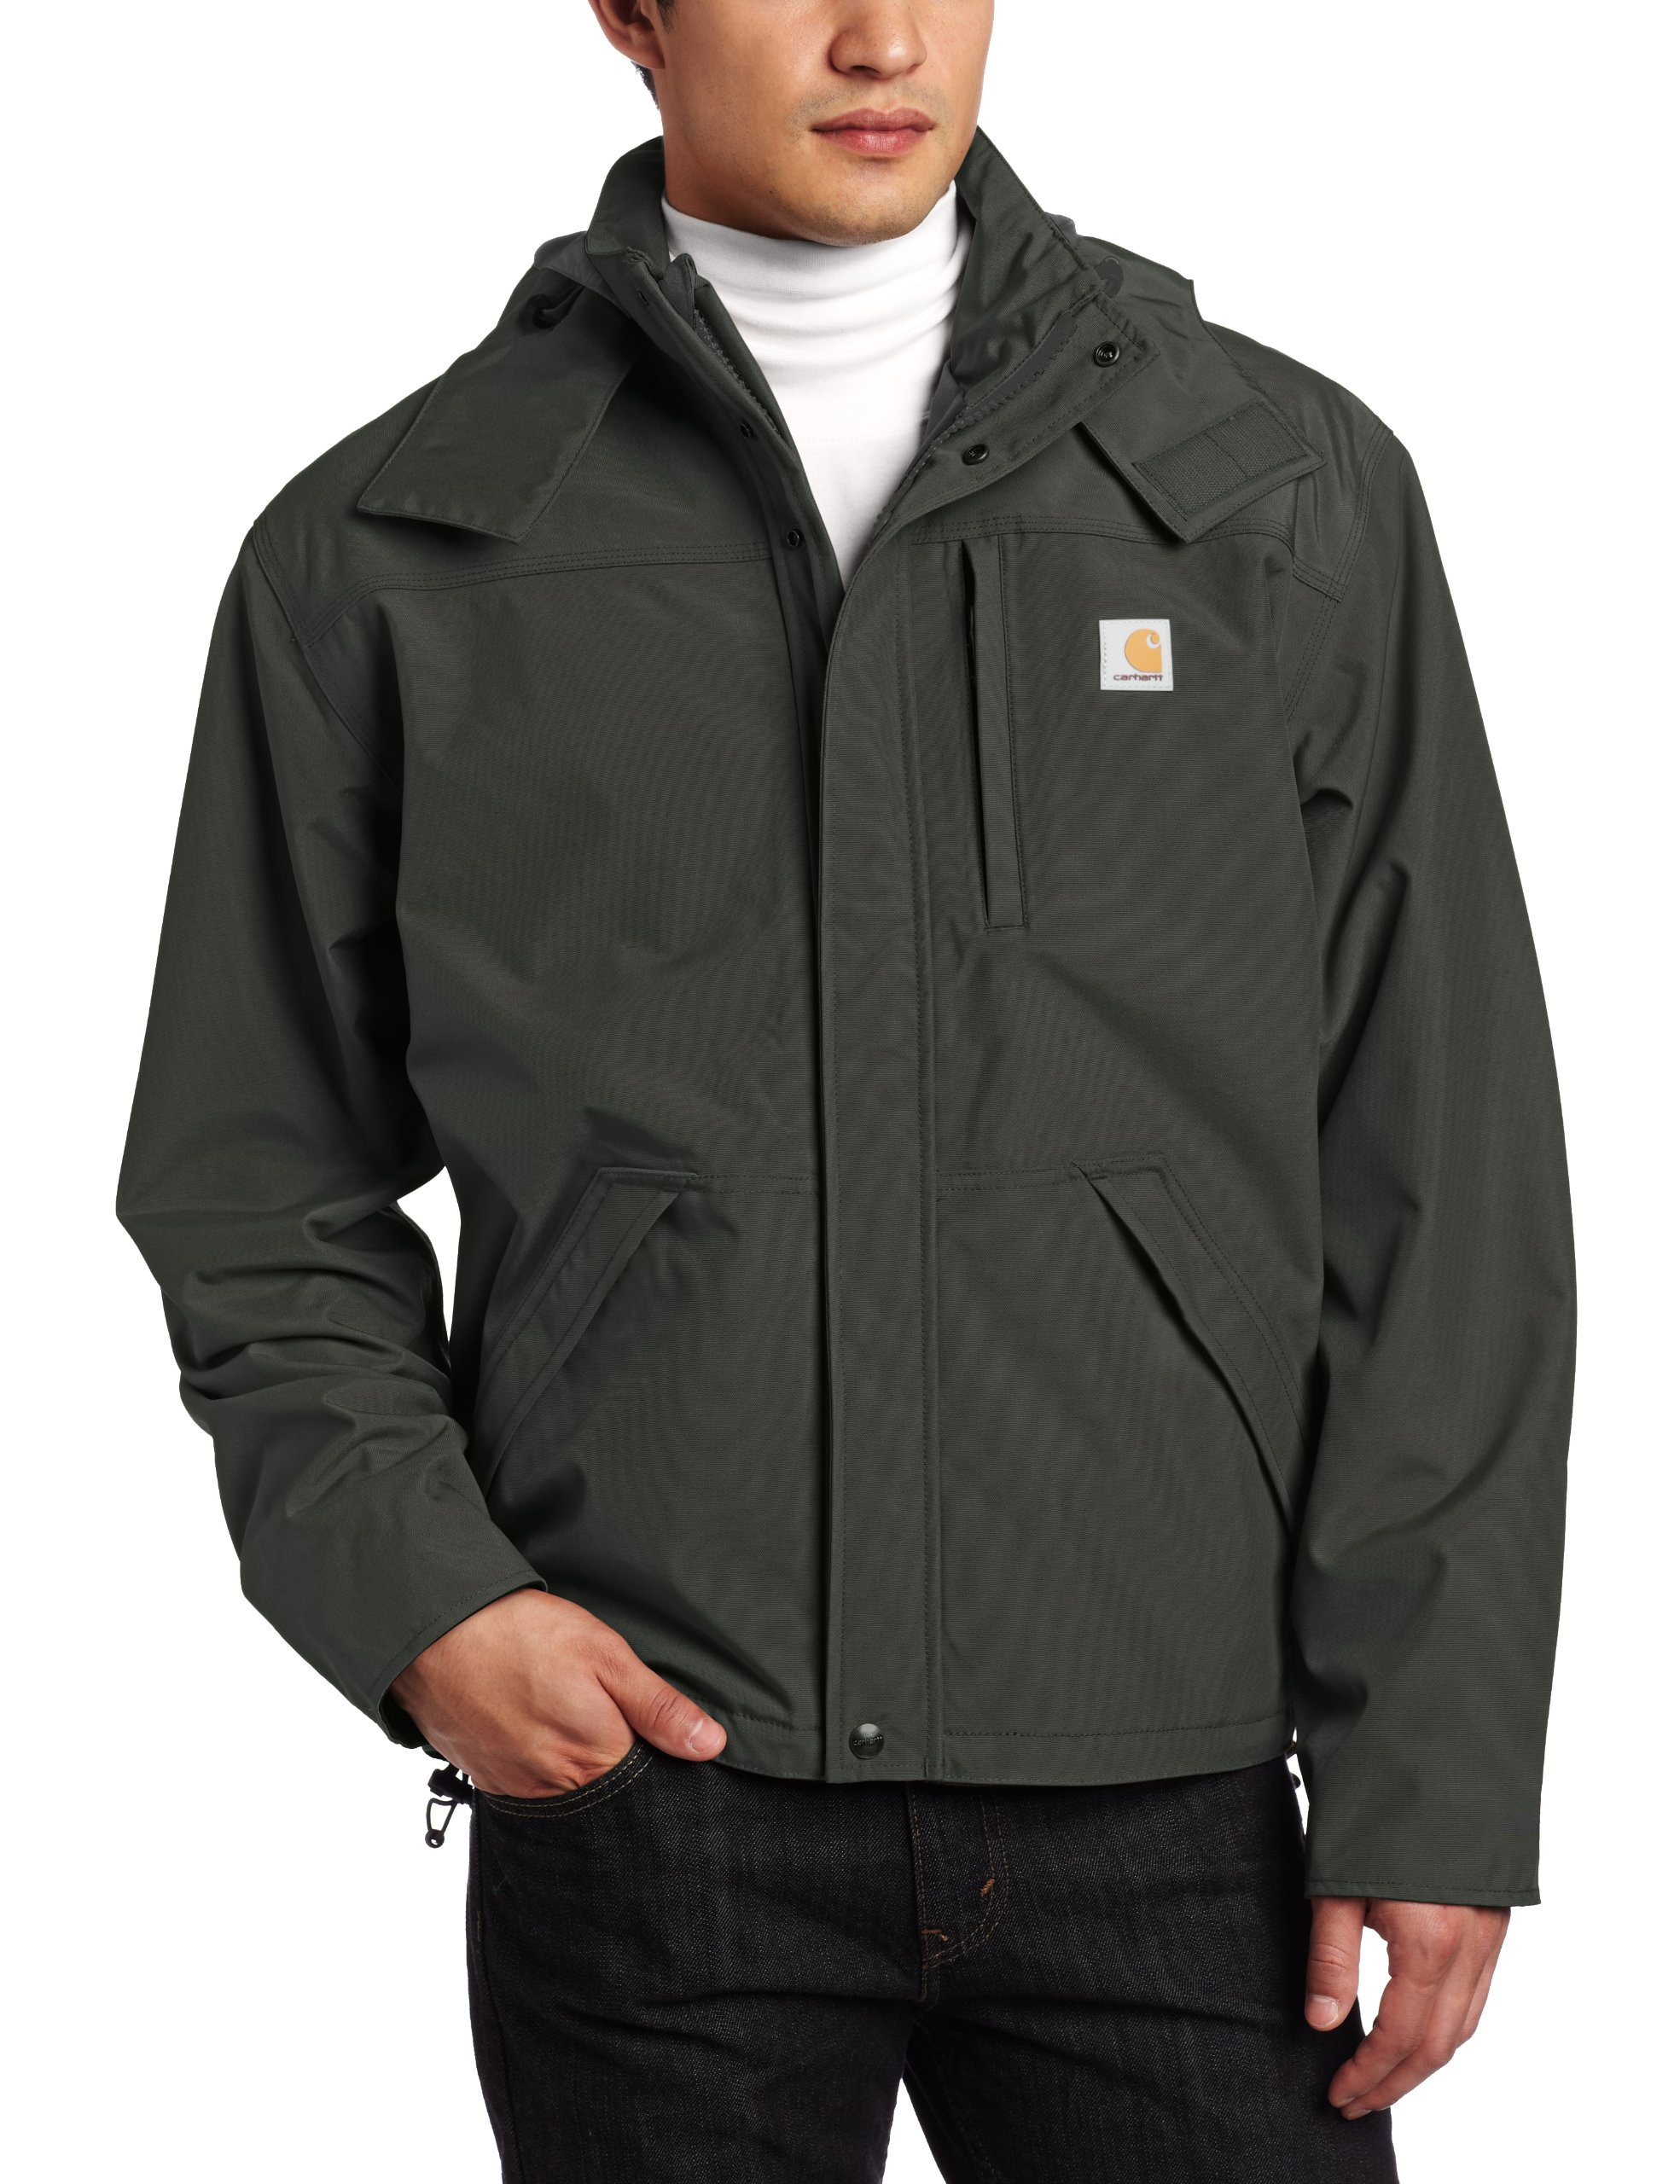 Carhartt Men's Shoreline Jacket Waterproof Breathable Nylon,Olive,Small